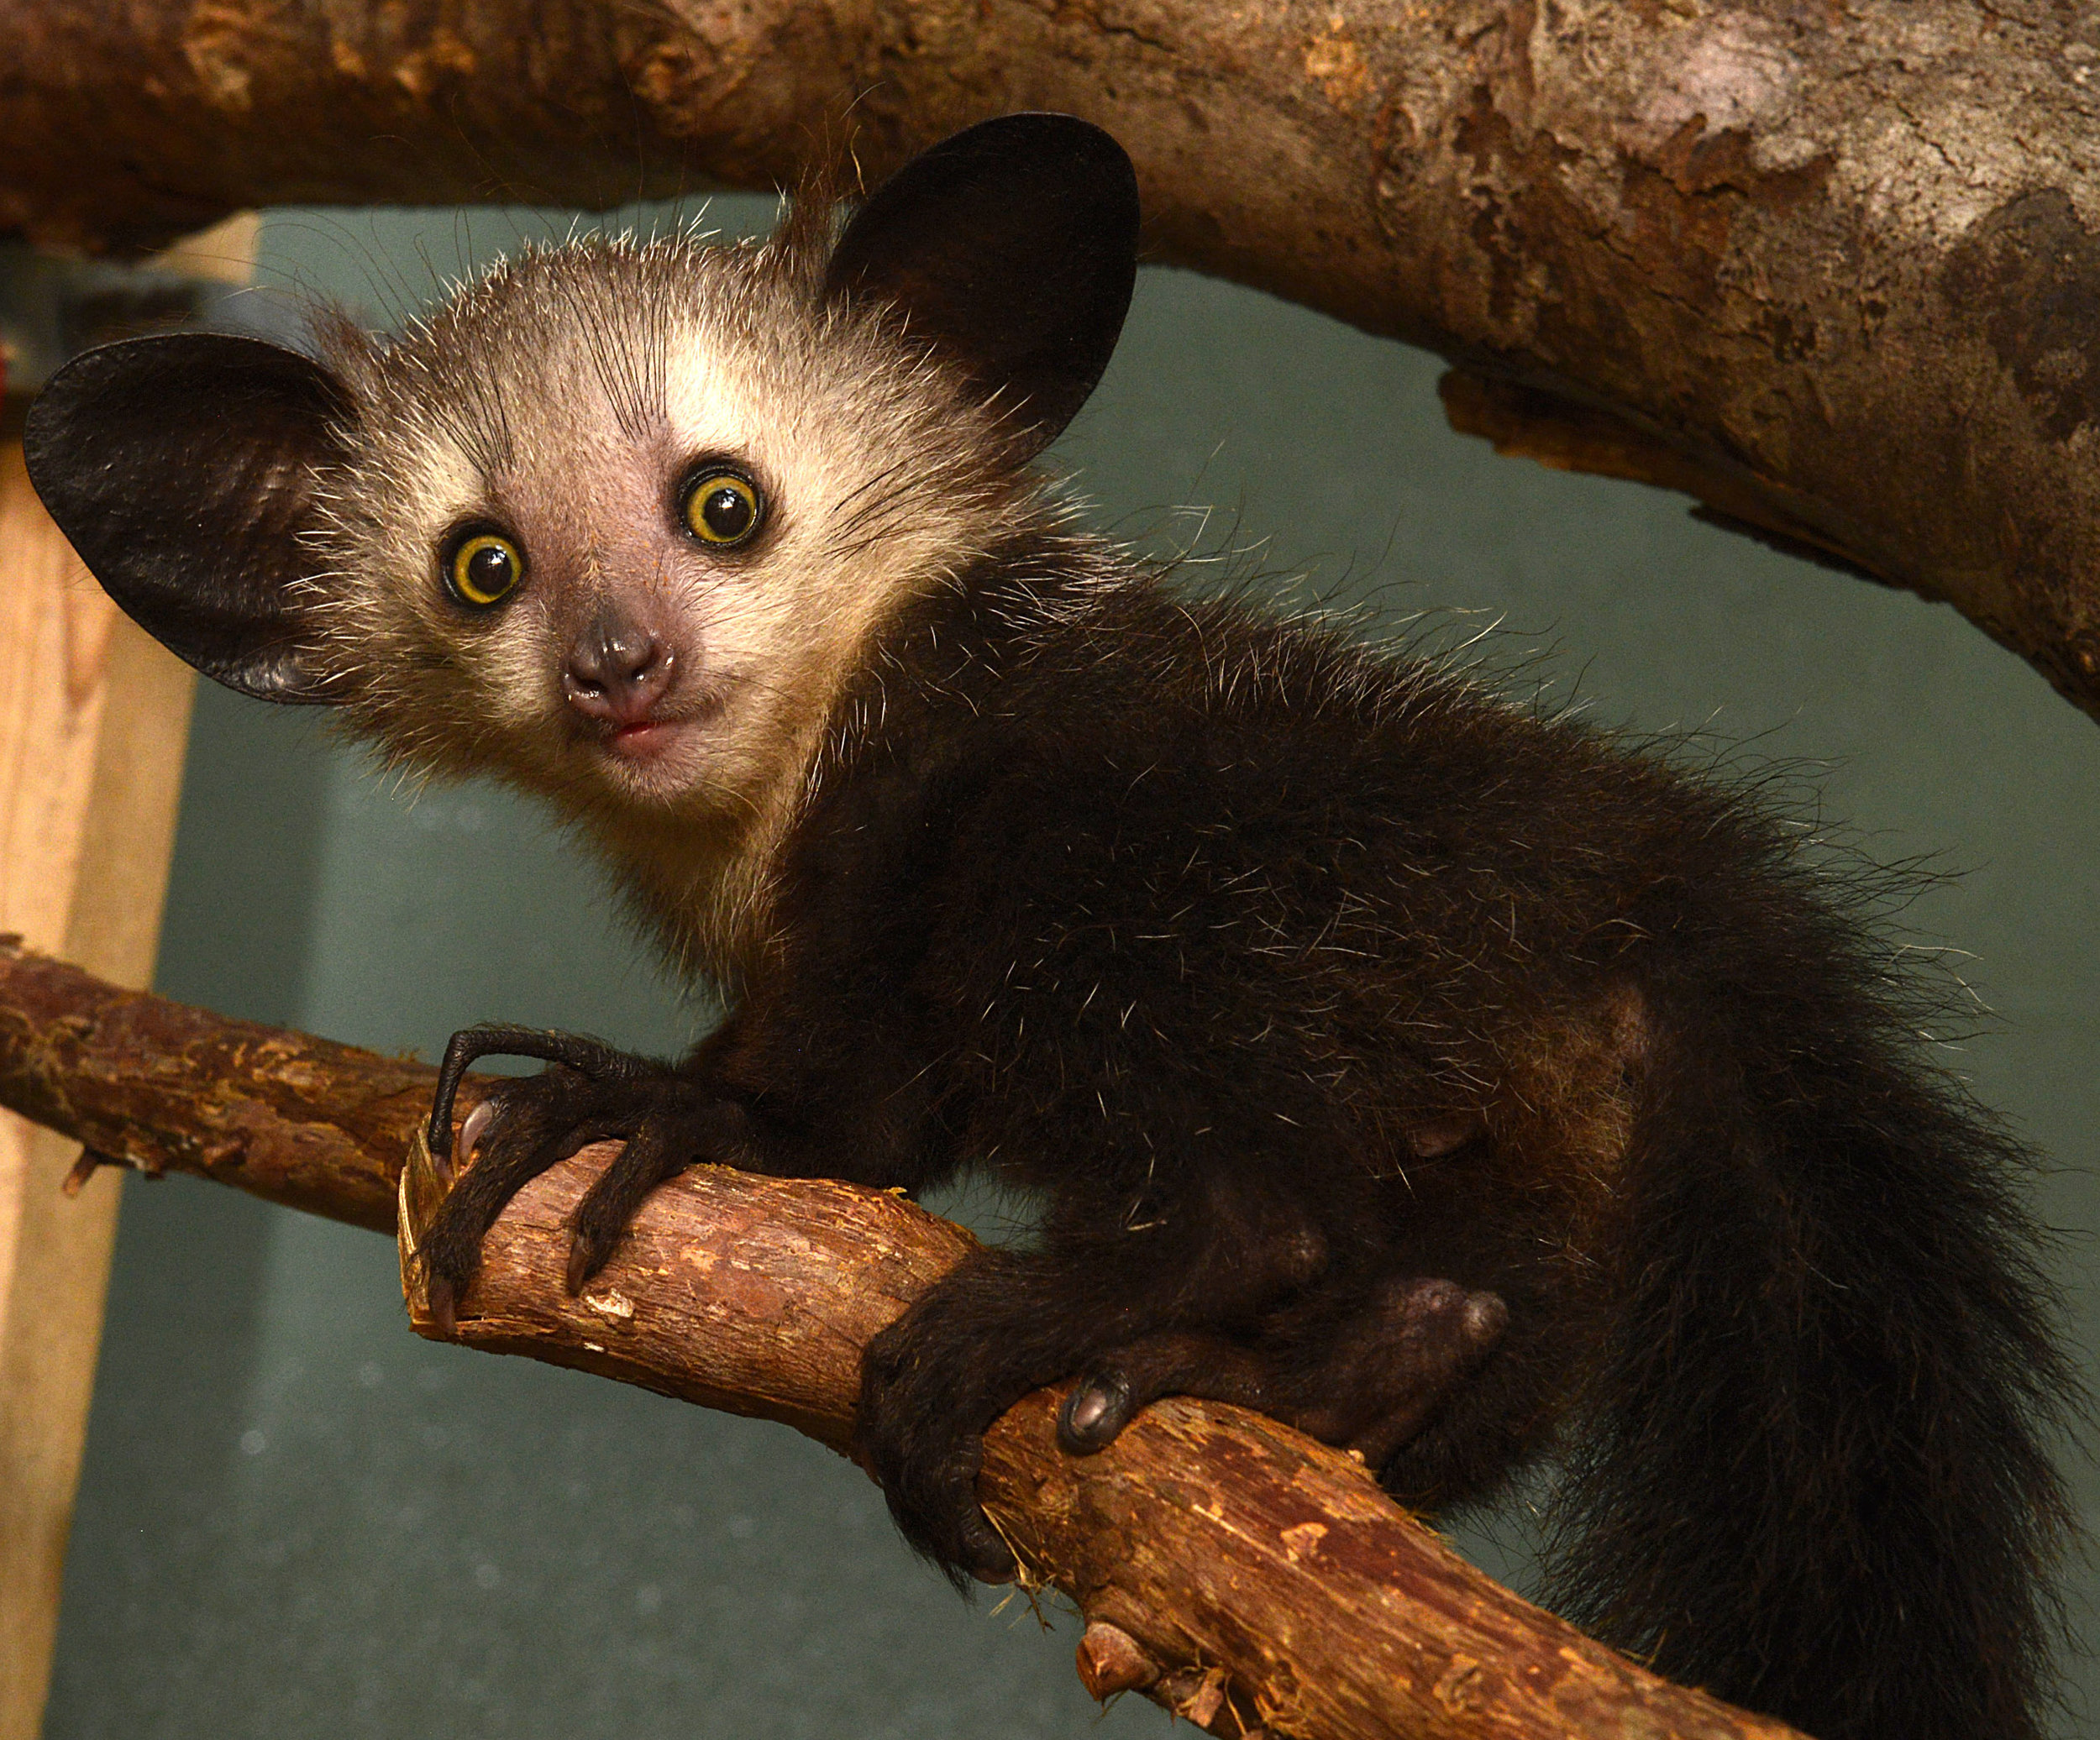 Don't look further than this aye aye (a lemur like creature native to Madagascar) for proof enlightenment exists